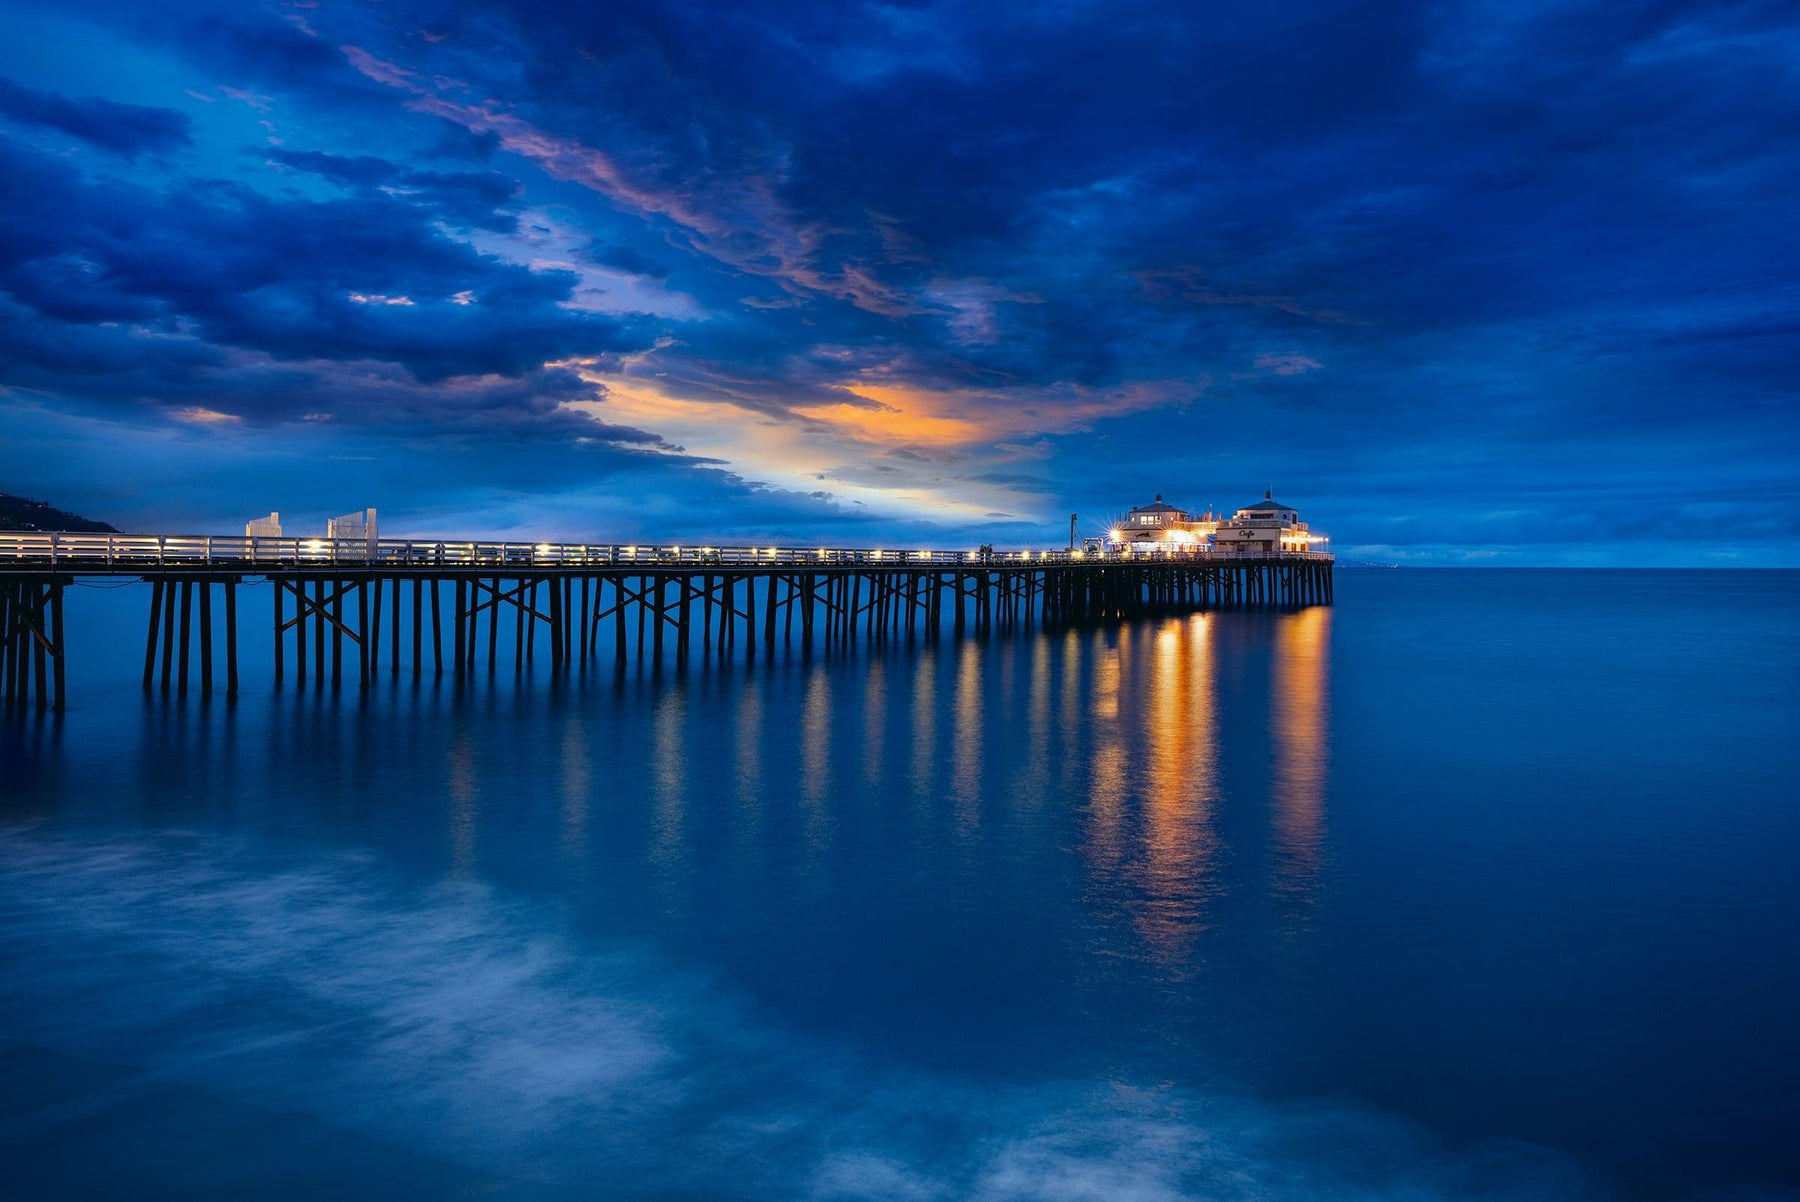 Malibu Pier leading out over the ocean in California lit up at night under a cloud filled sky